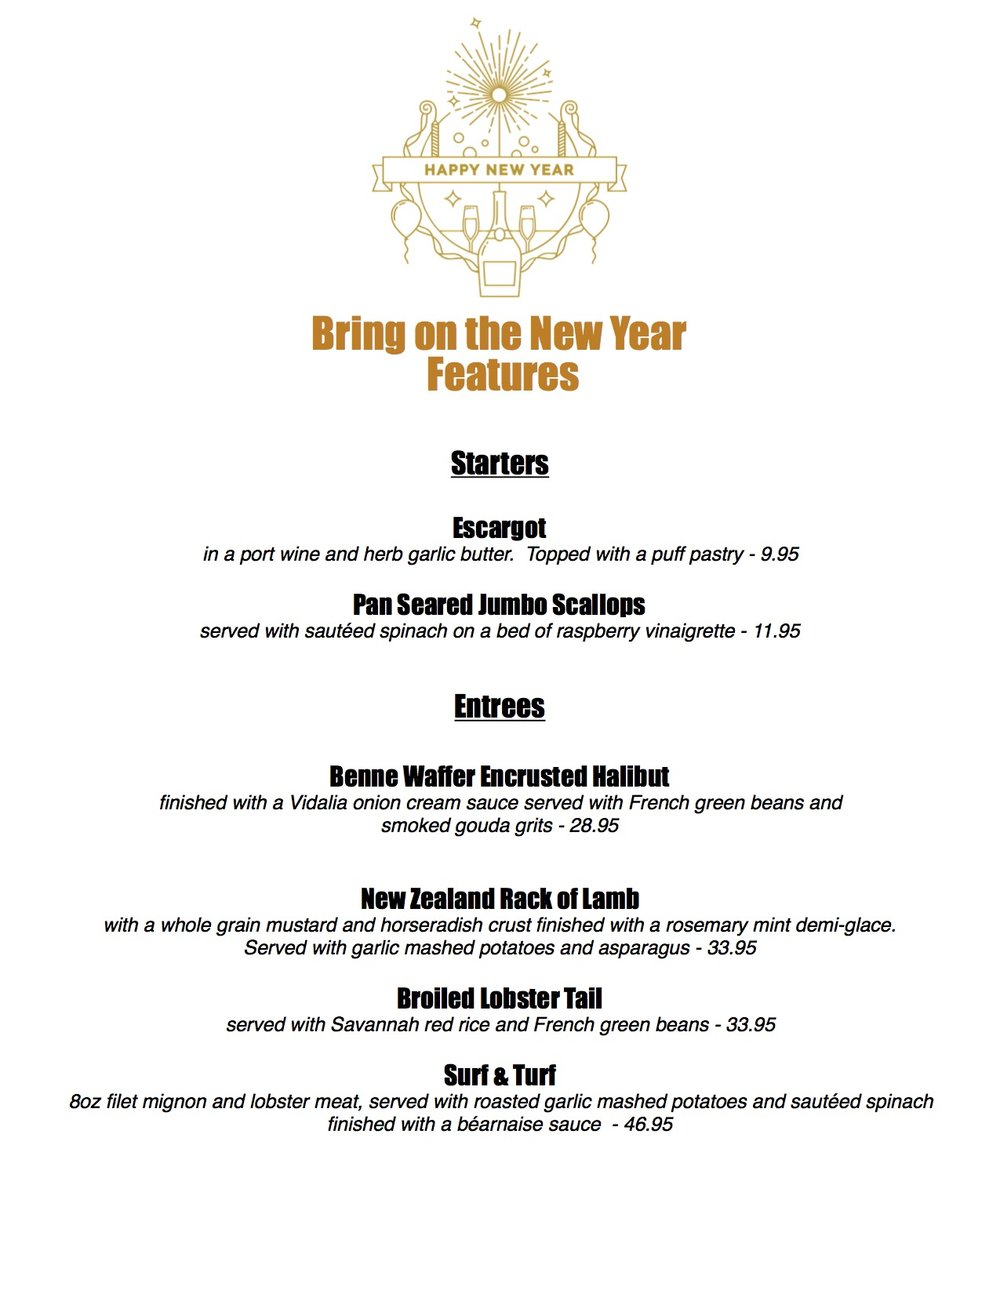 Serving these yummy New Year features Thursday through Saturday to ring in the New Year.  Also serving our delicious full menu.  Join us to ring in the New Year!